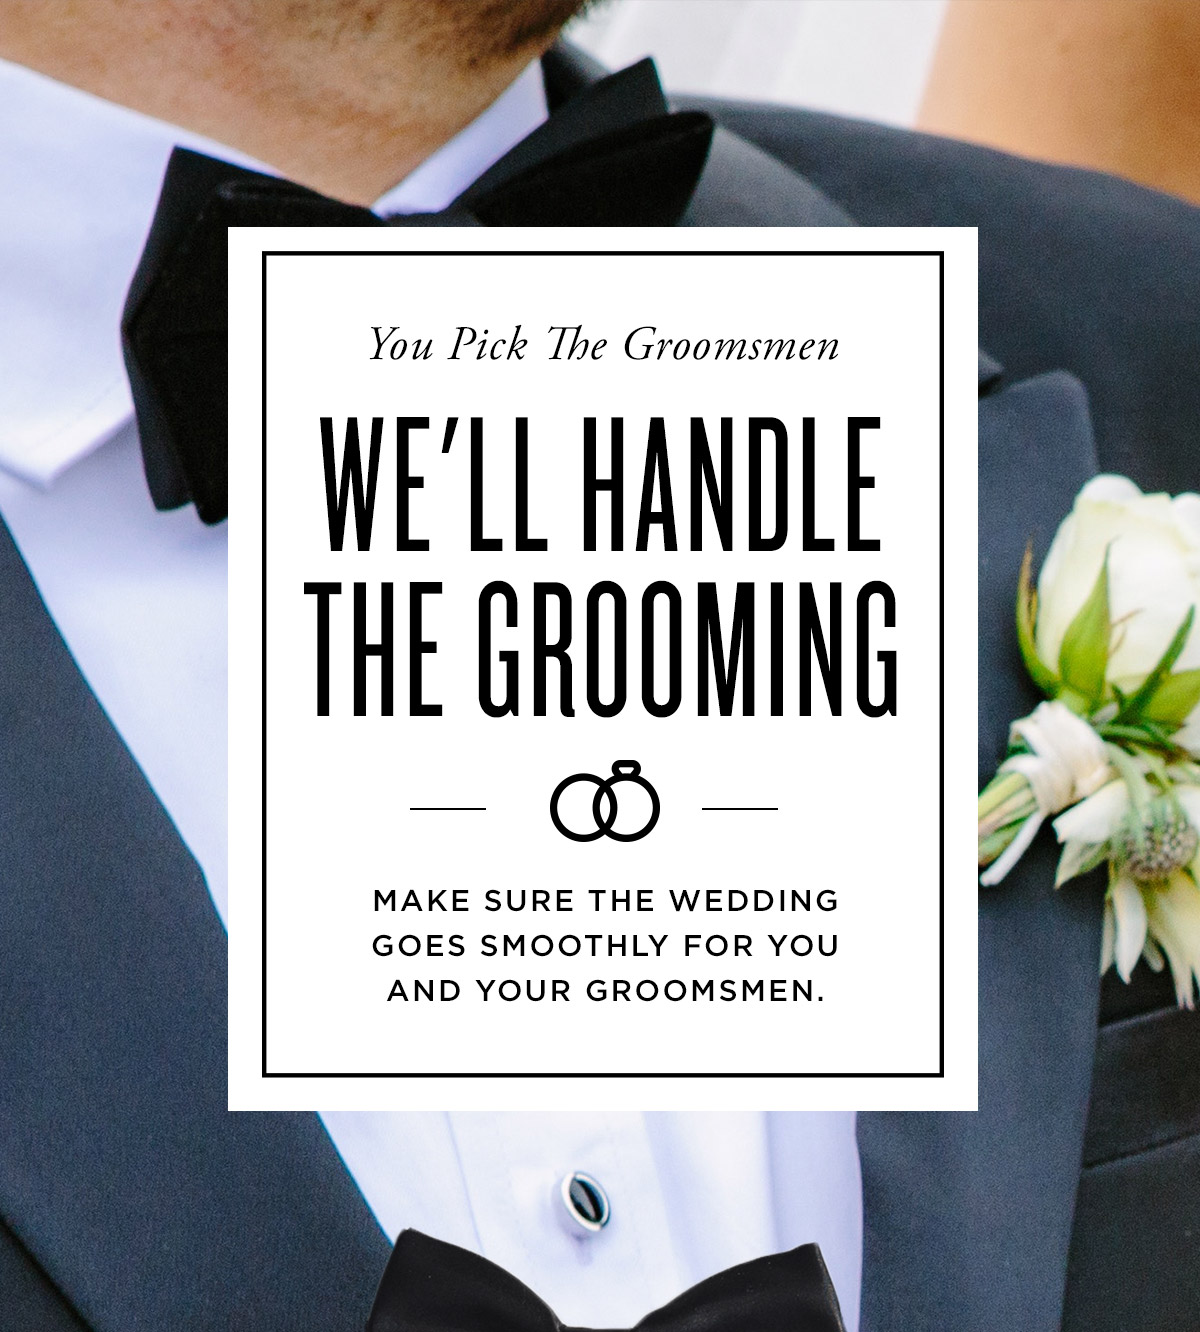 We'll Handle the Grooming